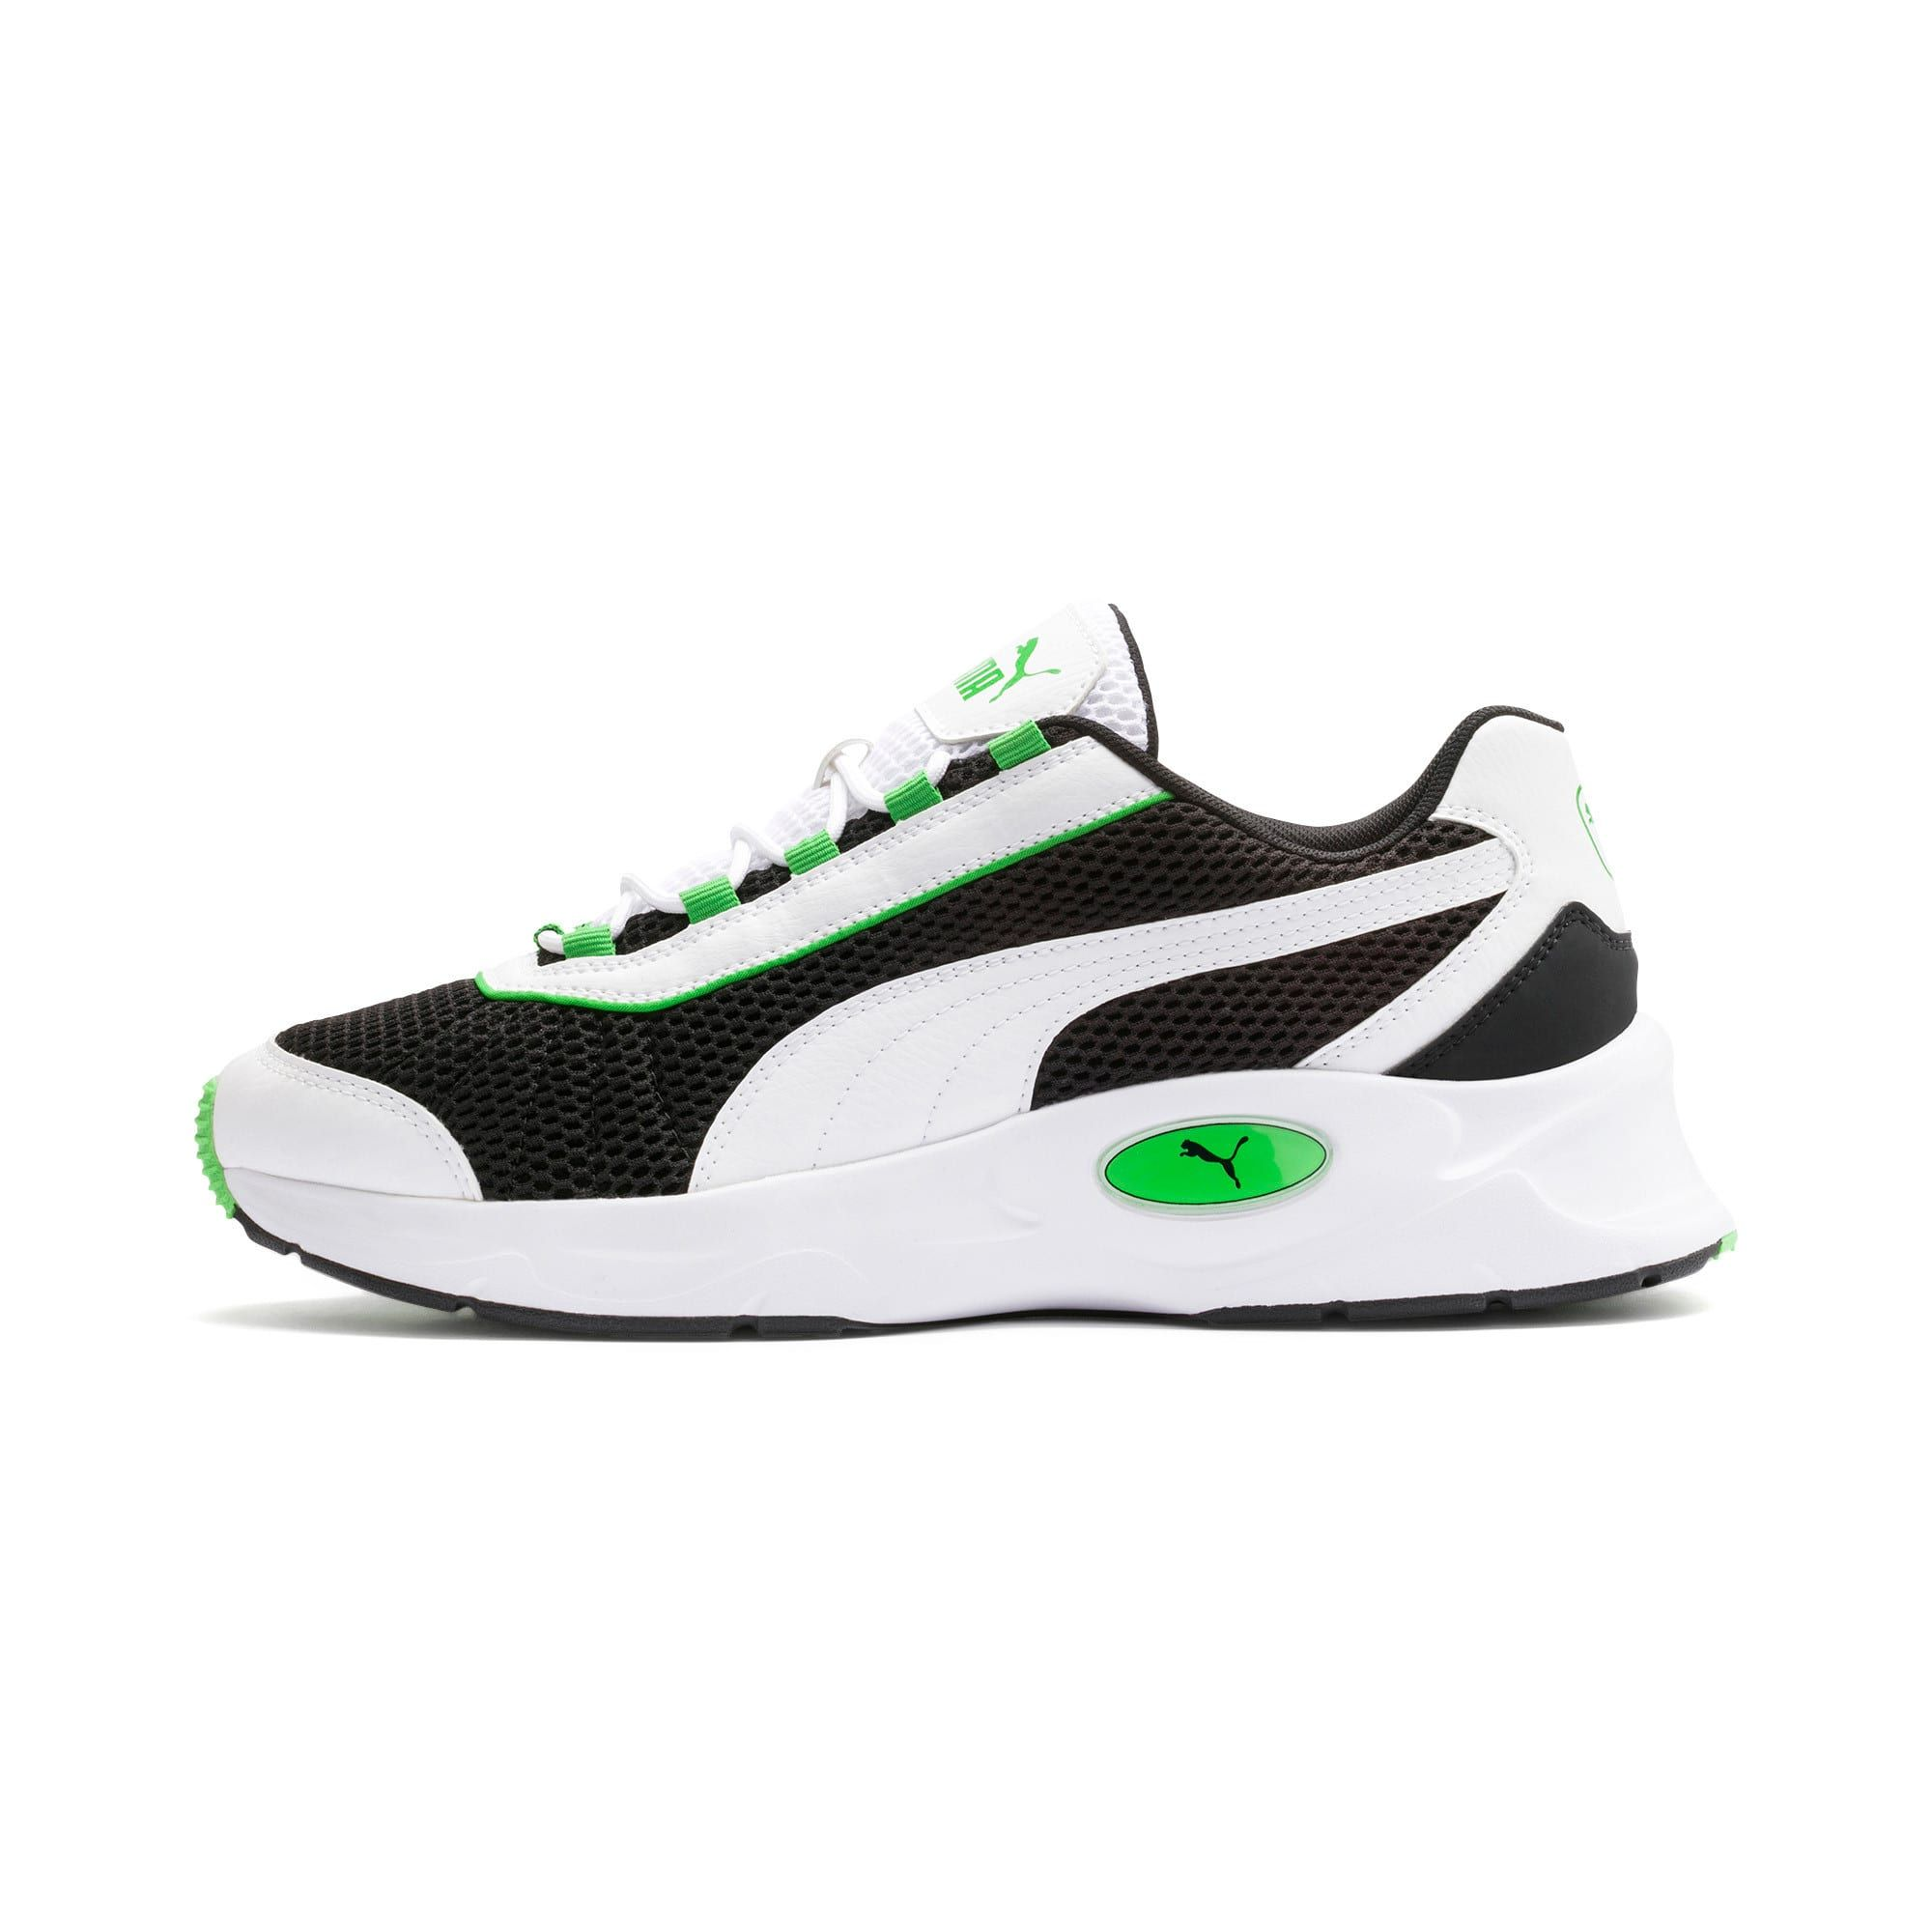 PUMA Nucleus Training Shoes in Black/Classic Green size 10.5